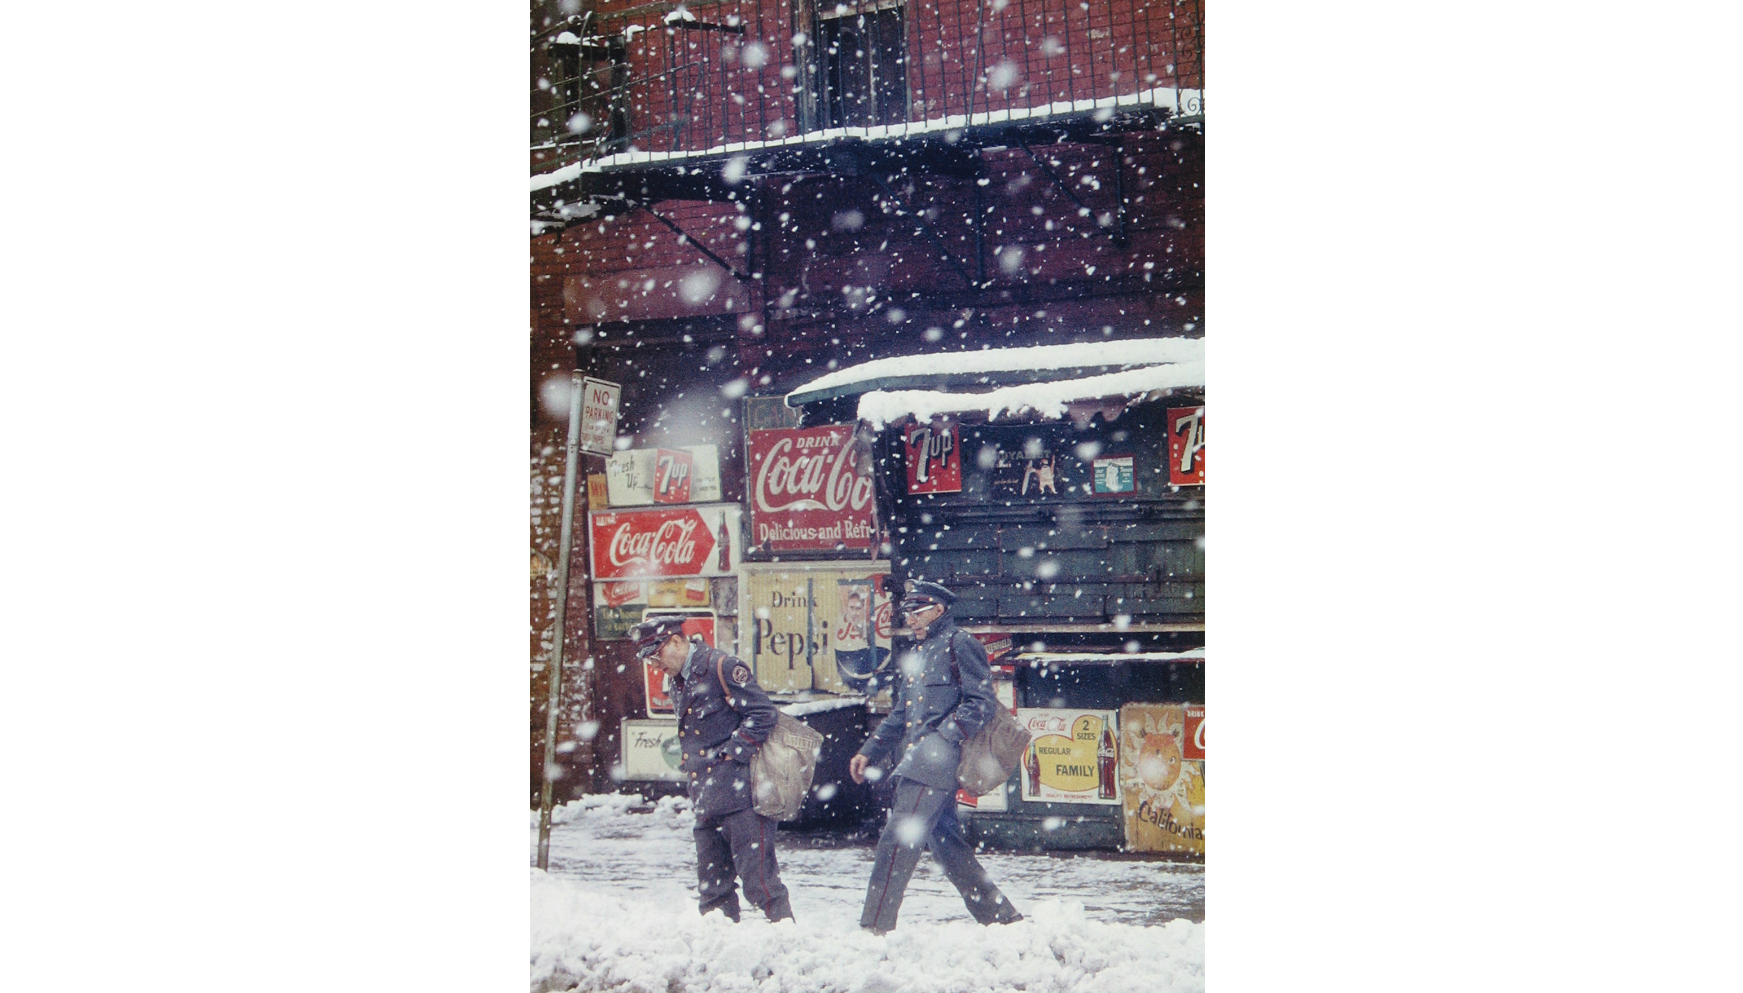 (Saul Leiter: 'Postmen', 1952. © Saul Leiter Courtesy Howard Greenberg Gallery, New York)